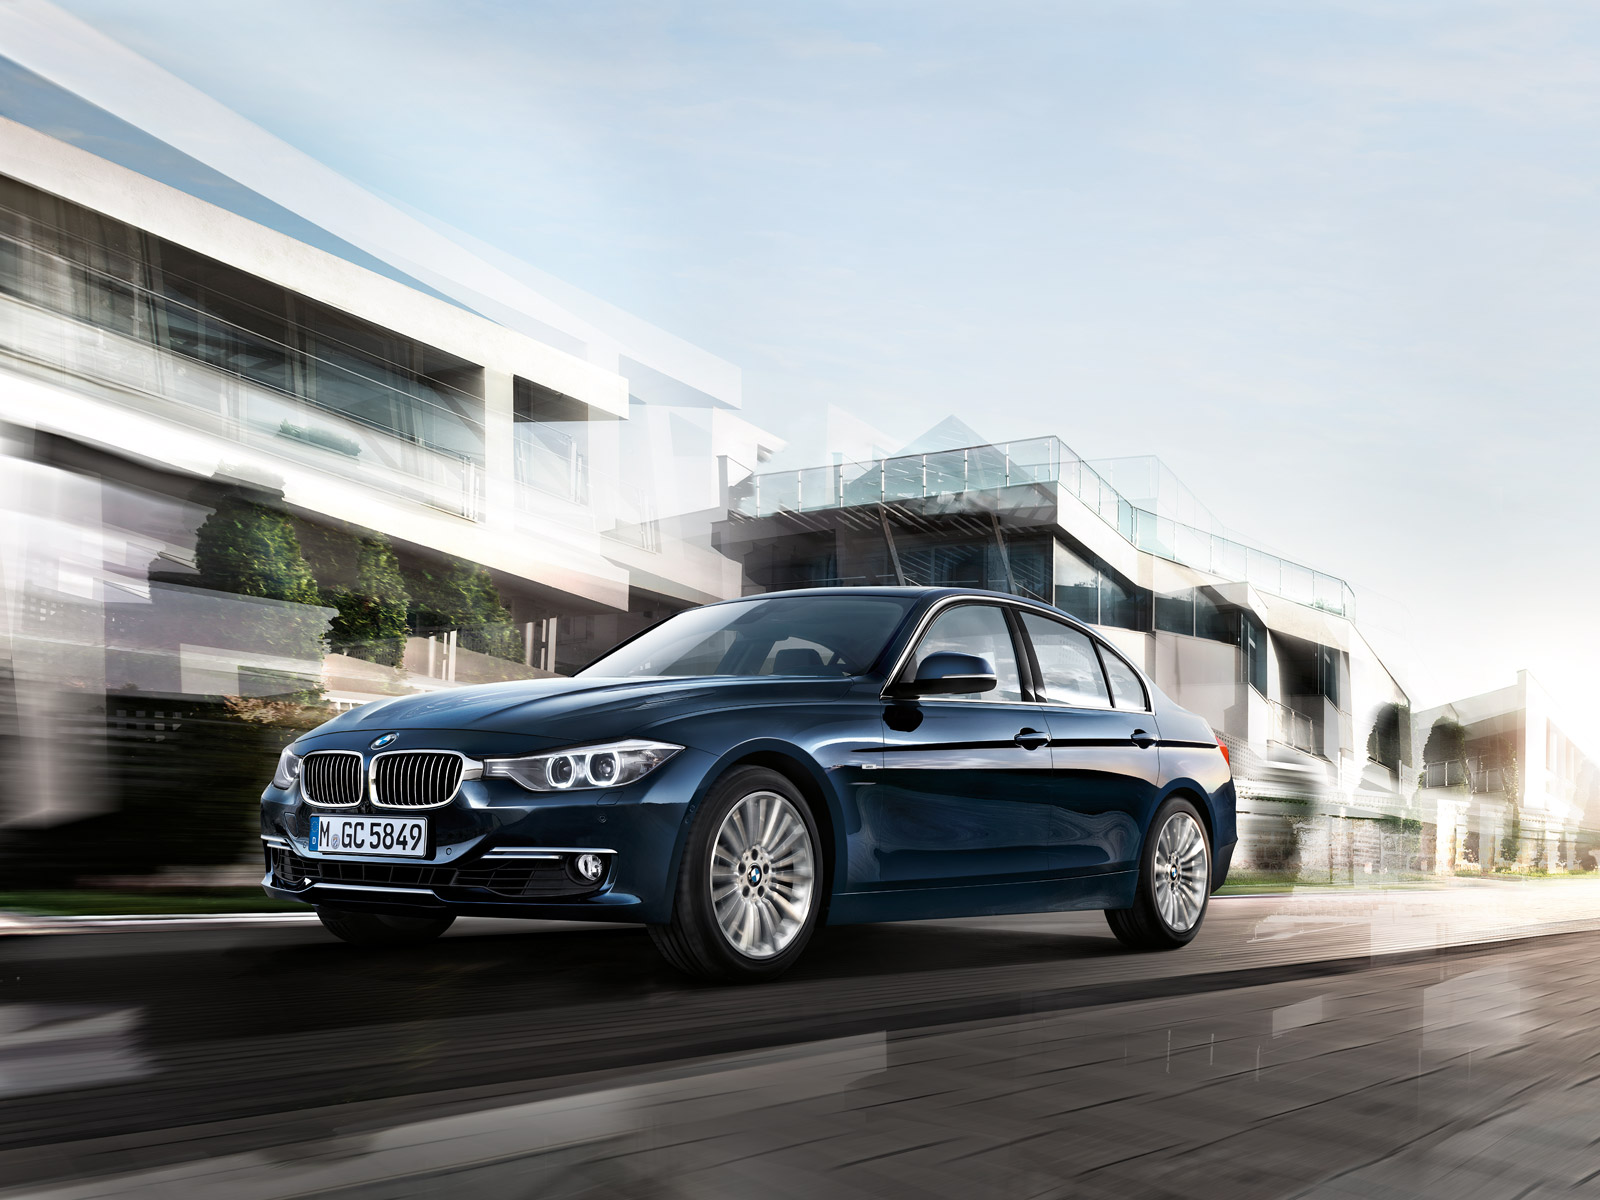 BMW_3series_wallpaper_16_1600